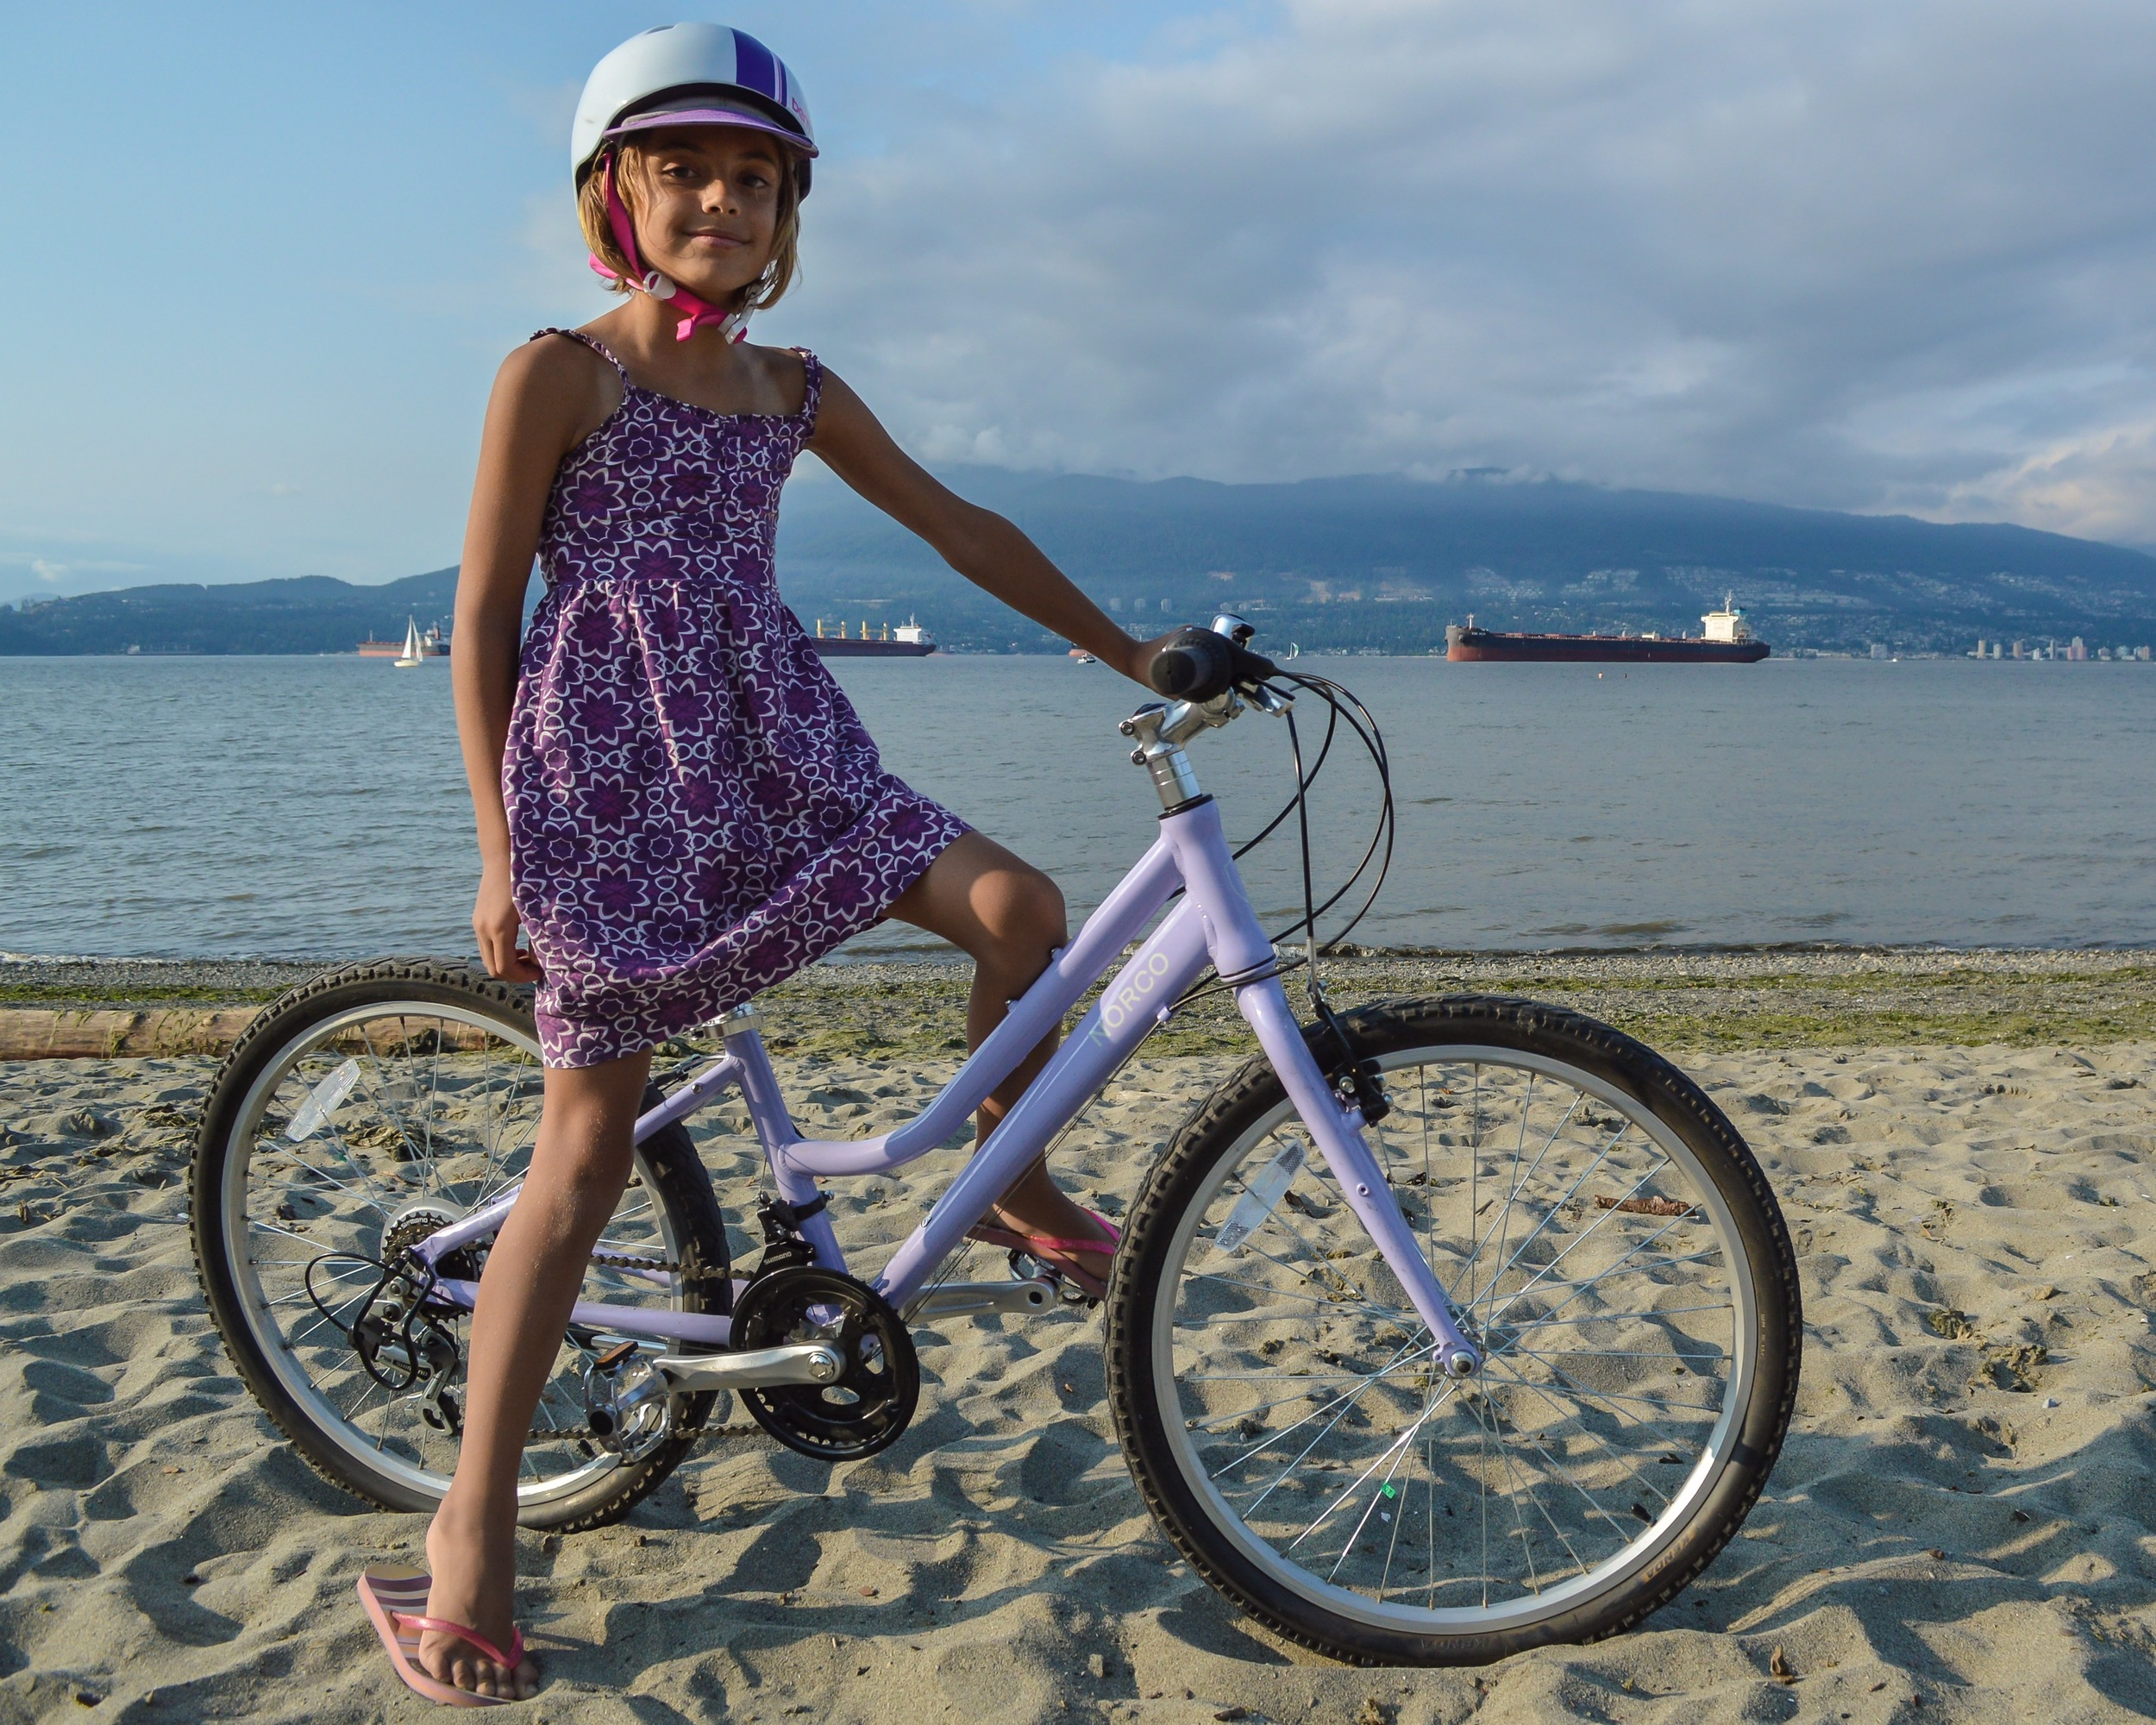 Even after riding many miles this summer, she's still happy to get on her bike again and again.